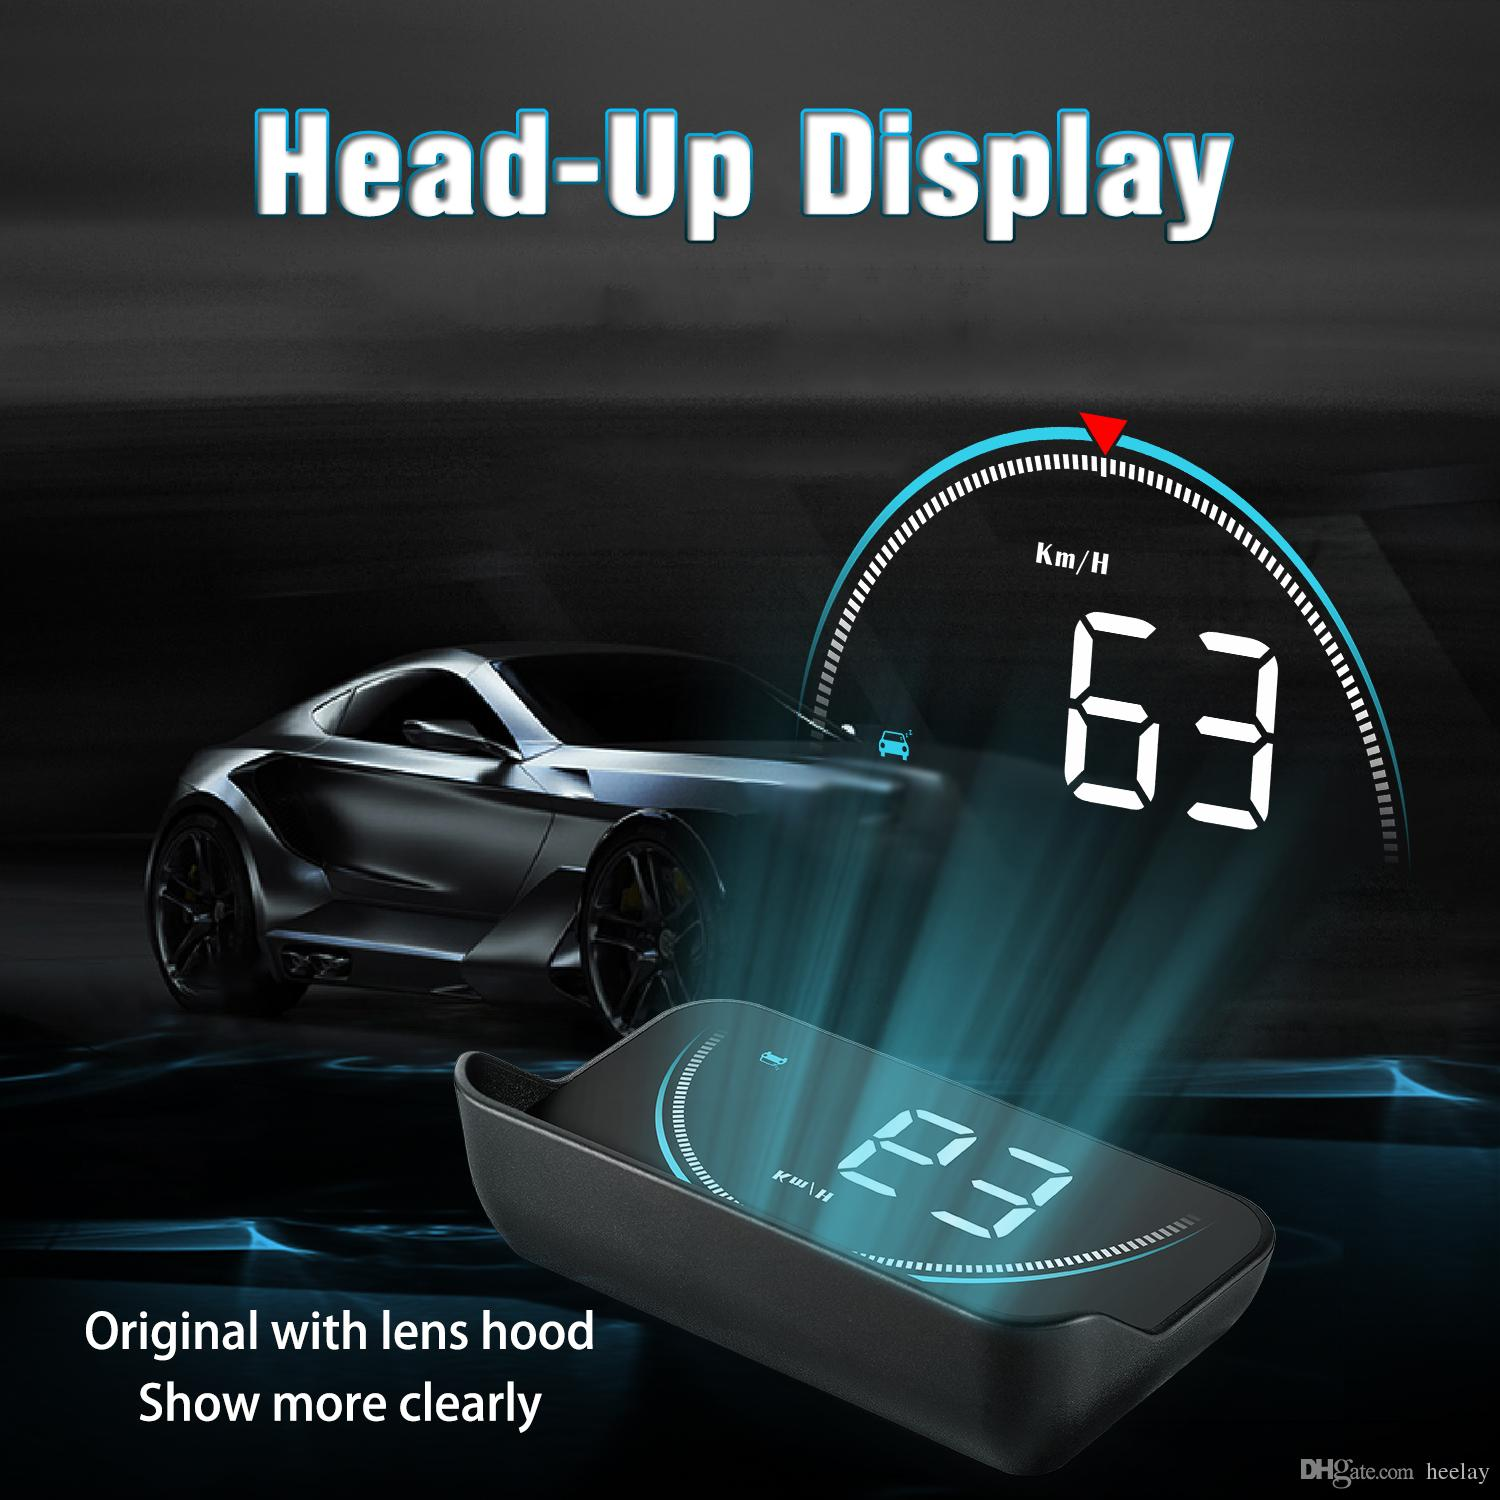 Automobiles & Motorcycles 3 Size Pet Protective Film Car Hud Reflective Film Head Up Display System Film Obd Ii Fuel Consumption Overspeed Display Car Electronics Accessories